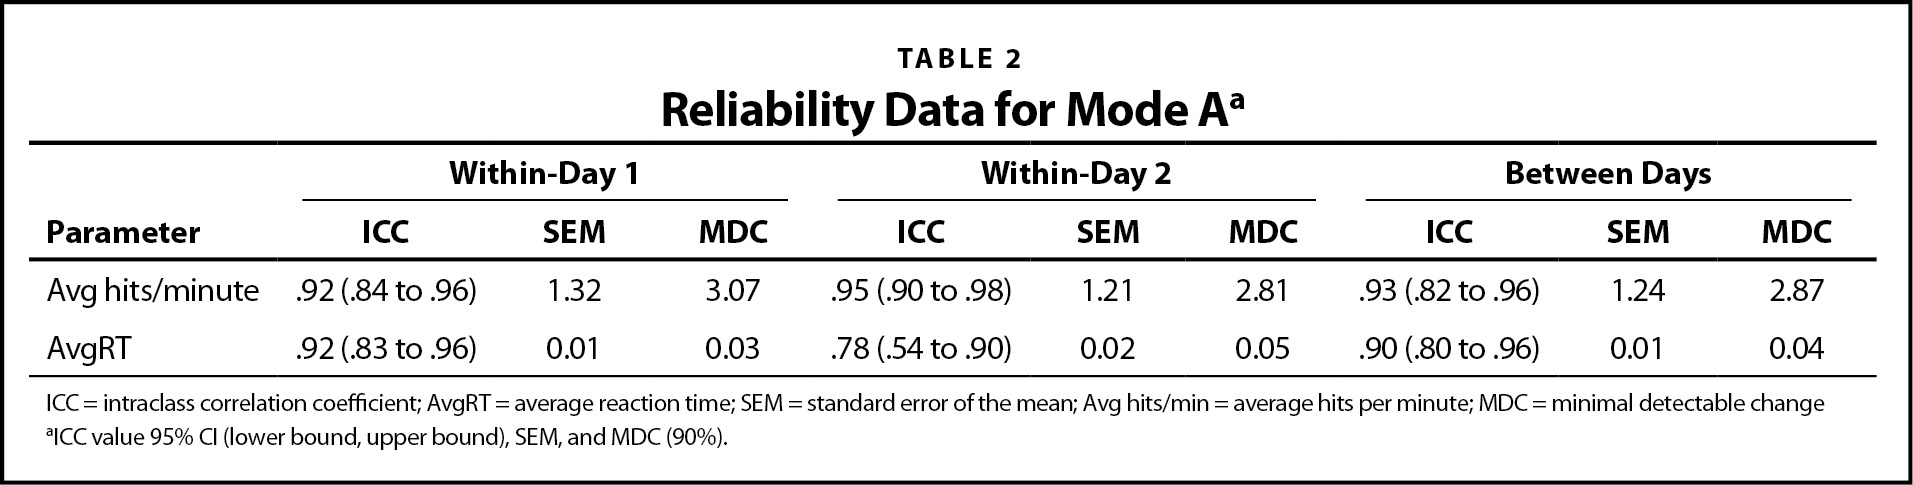 Reliability Data for Mode Aa